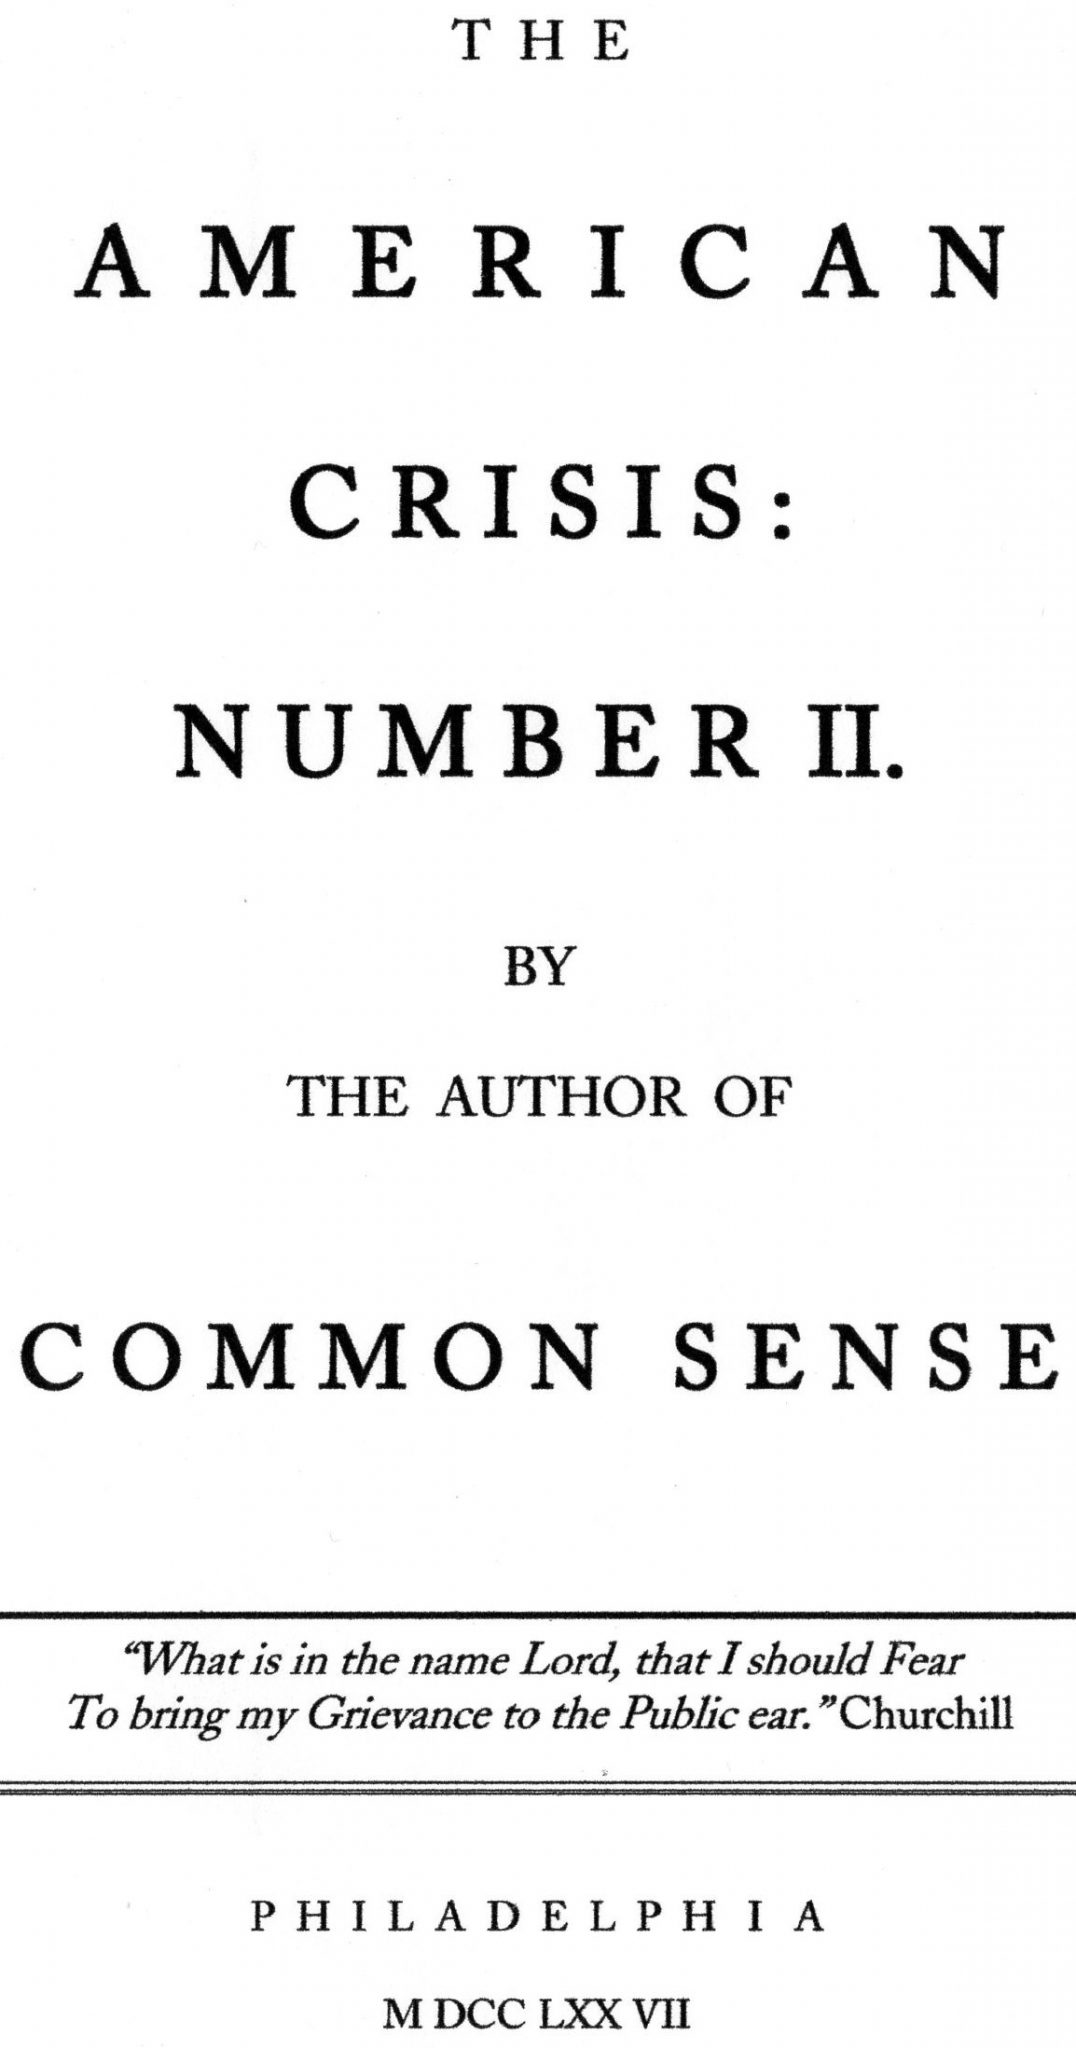 The American Crisis: Number II